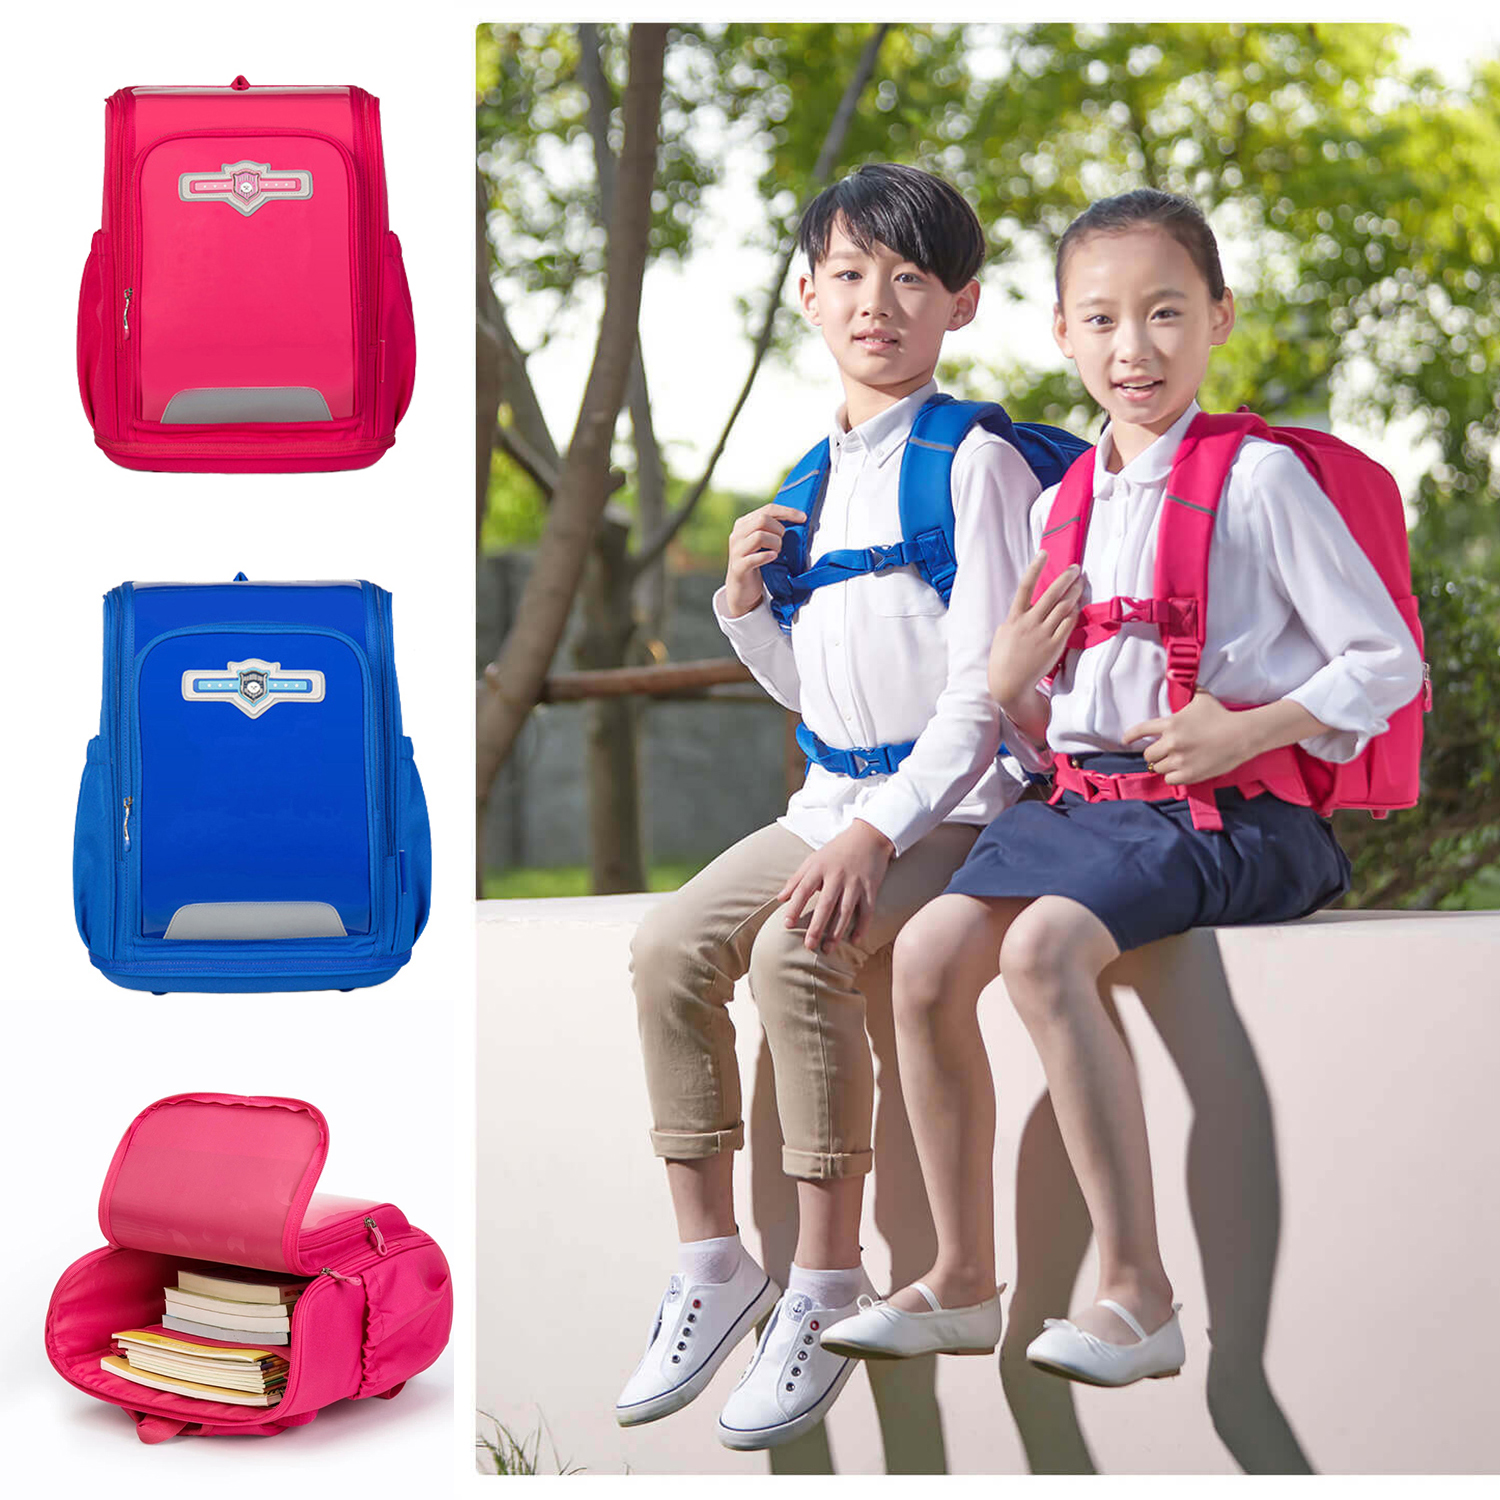 Xiaoyang Children Kids Backpack Student Schoolbag Satchel Burden Reducing Protect Spine For Boys Girls from xiaomi youpin